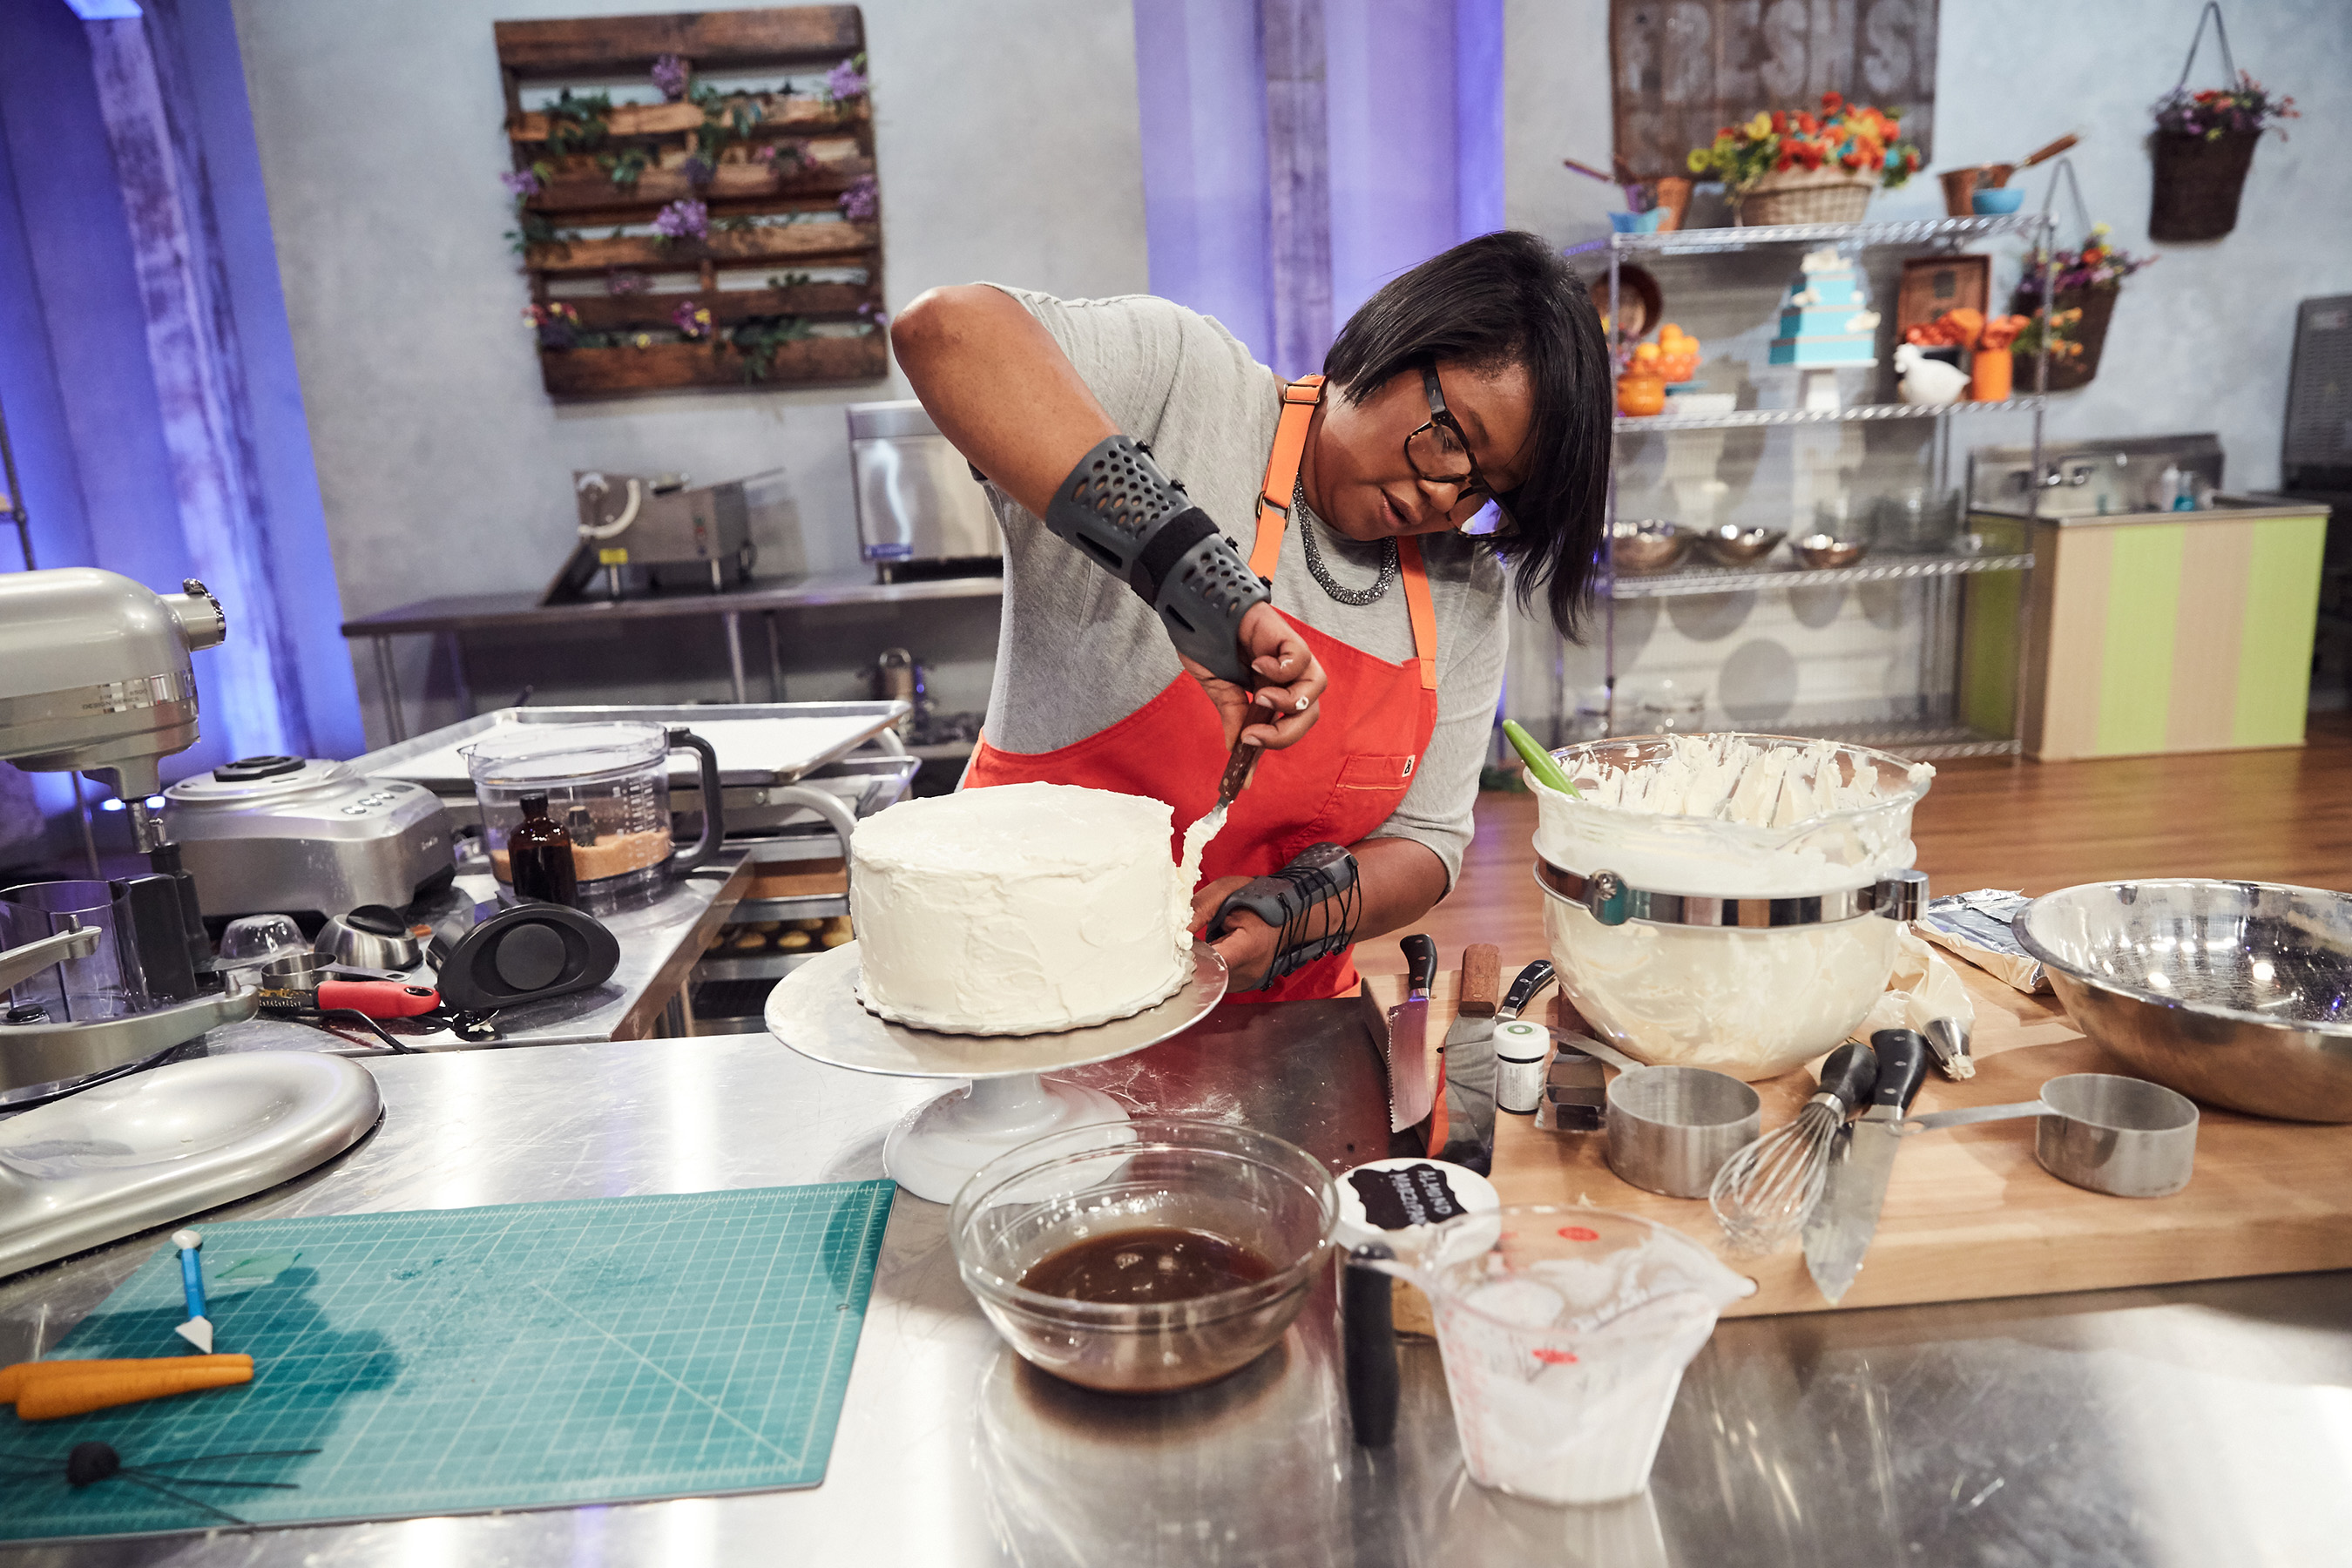 Competitor Samirah Williams on Food Network's Spring Baking Championship